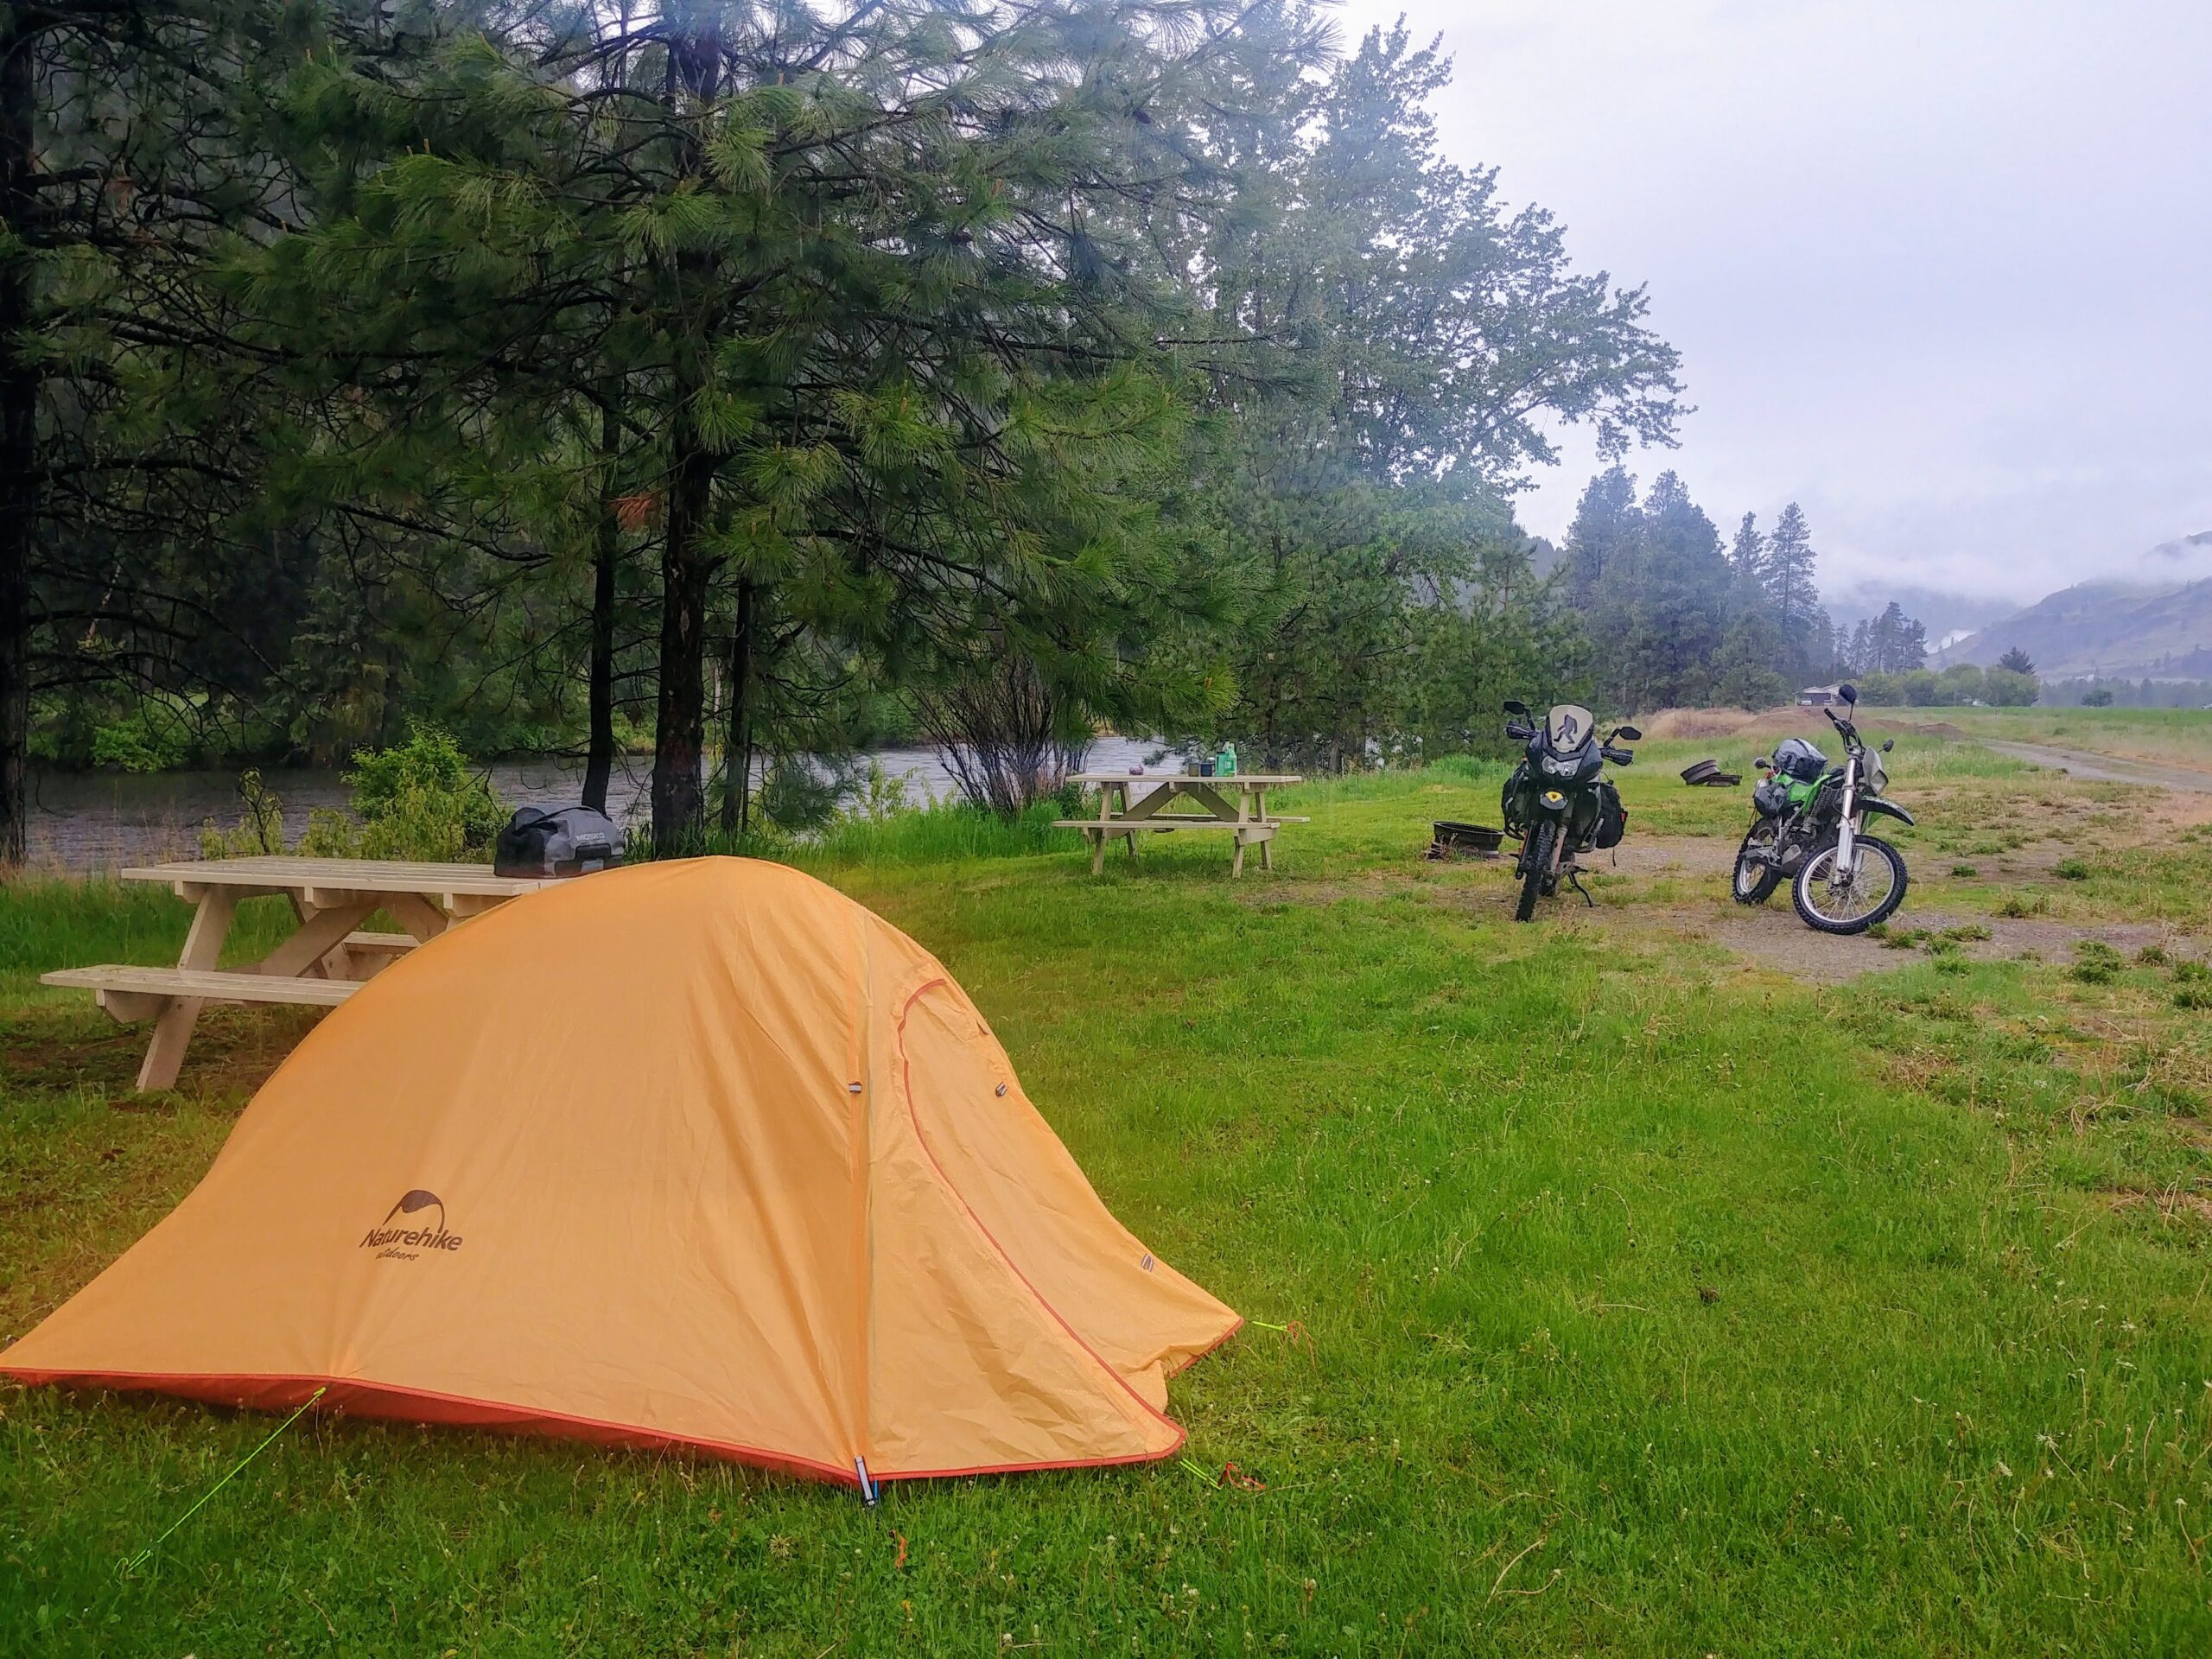 camping along canadian borer patrol route